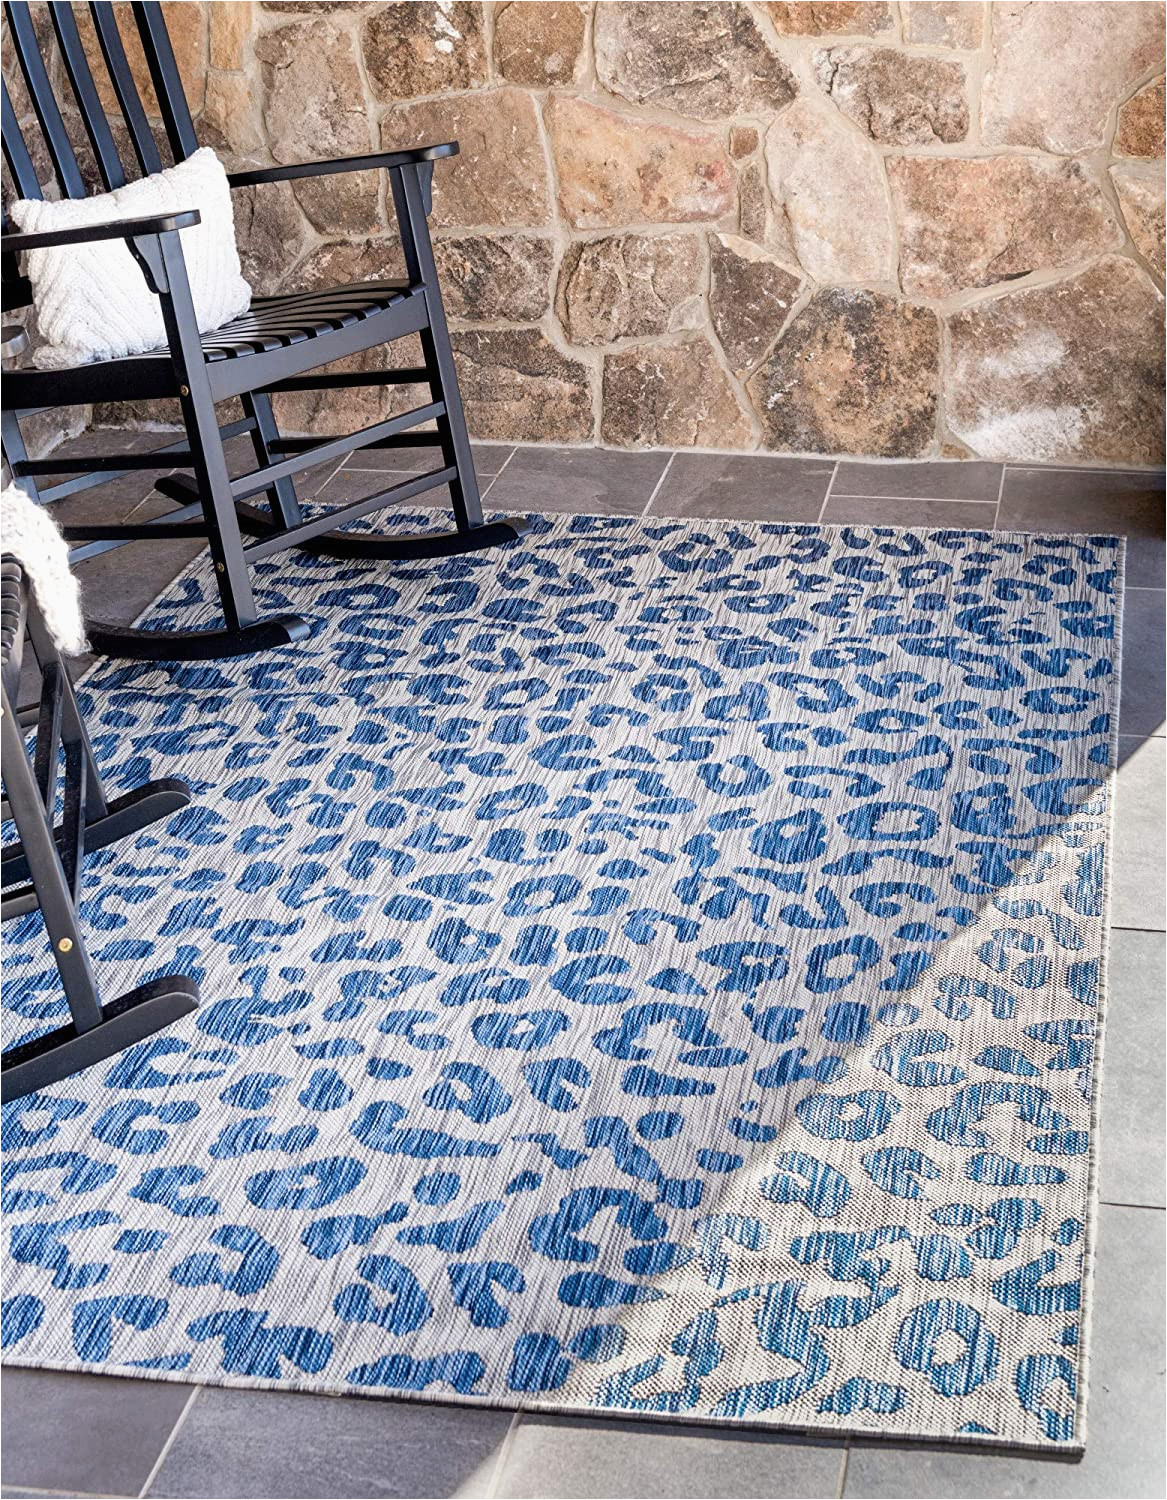 Blue Cheetah Print Rug Unique Loom Outdoor Safari Collection Leopard Animal Print Transitional Indoor and Outdoor Flatweave Blue area Rug 8 0 X 11 4